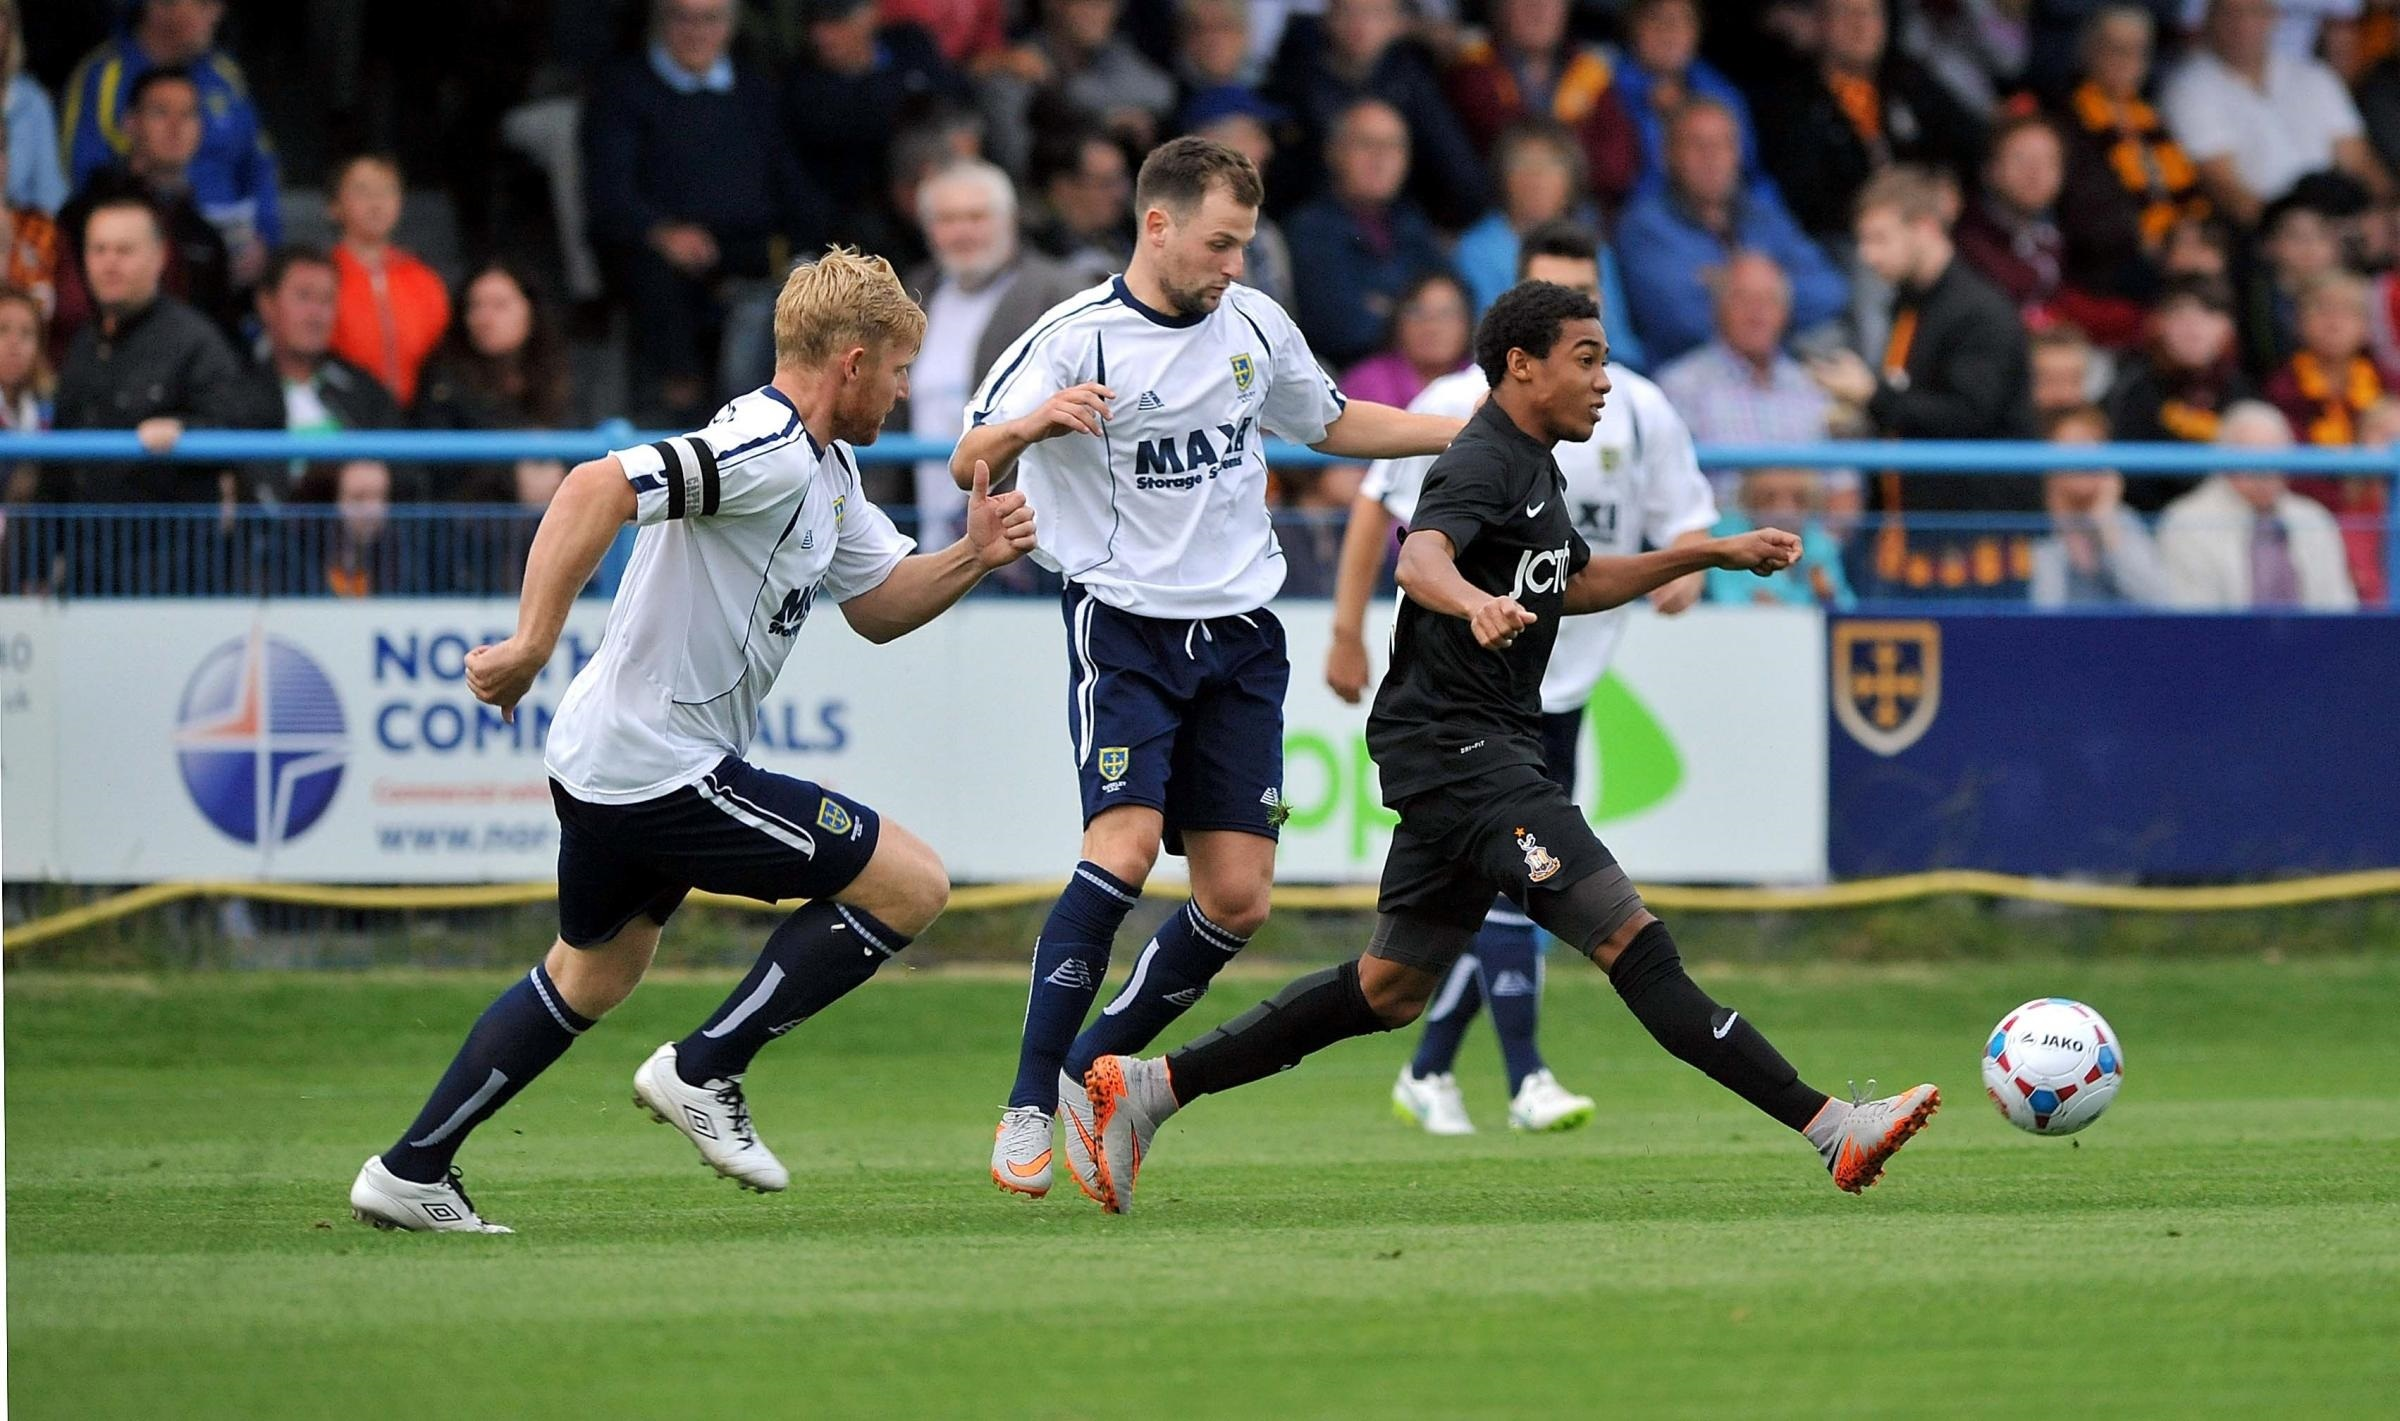 FIRST IMPRESSIONS: Jon Lewis caught the eye against Guiseley but City saw little more from him